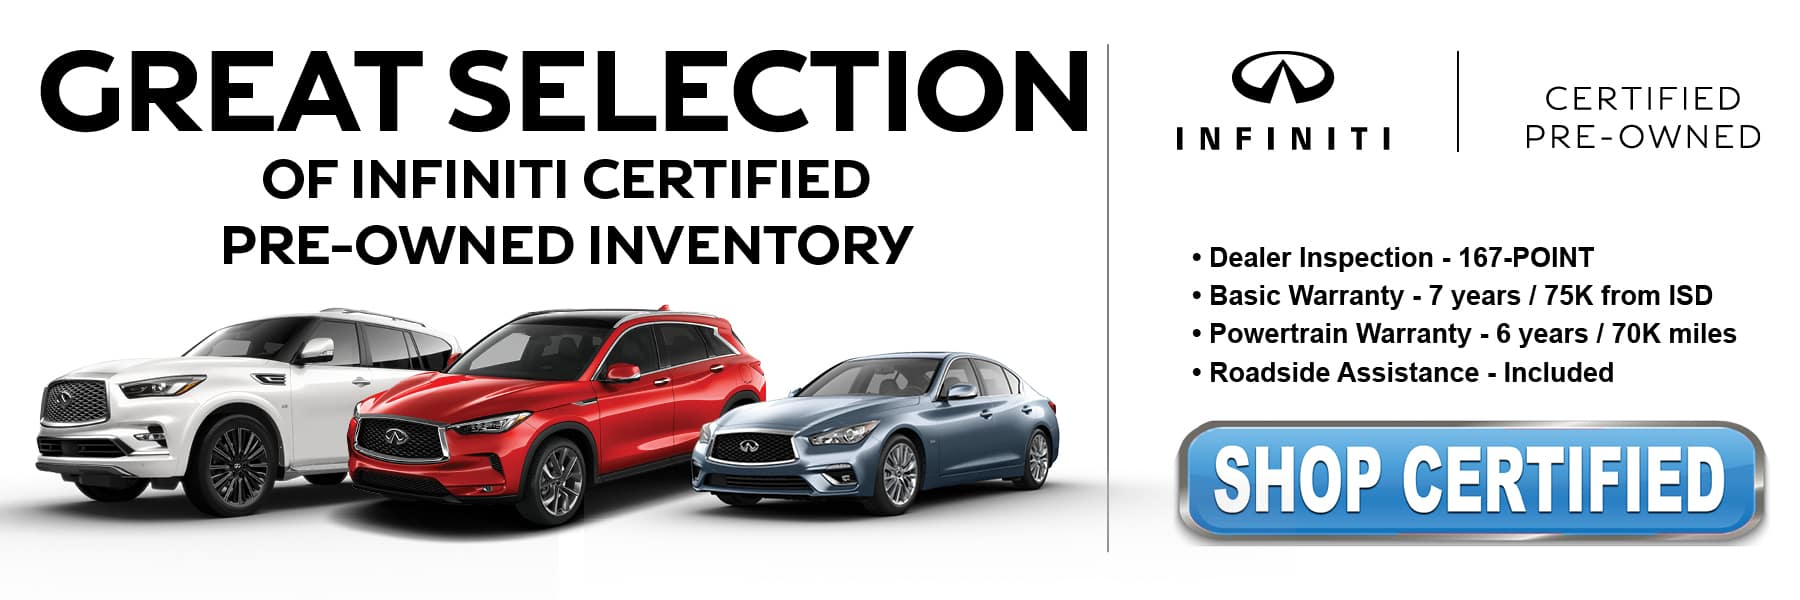 Shop Certified Pre-Owned at Kelly INFINITI